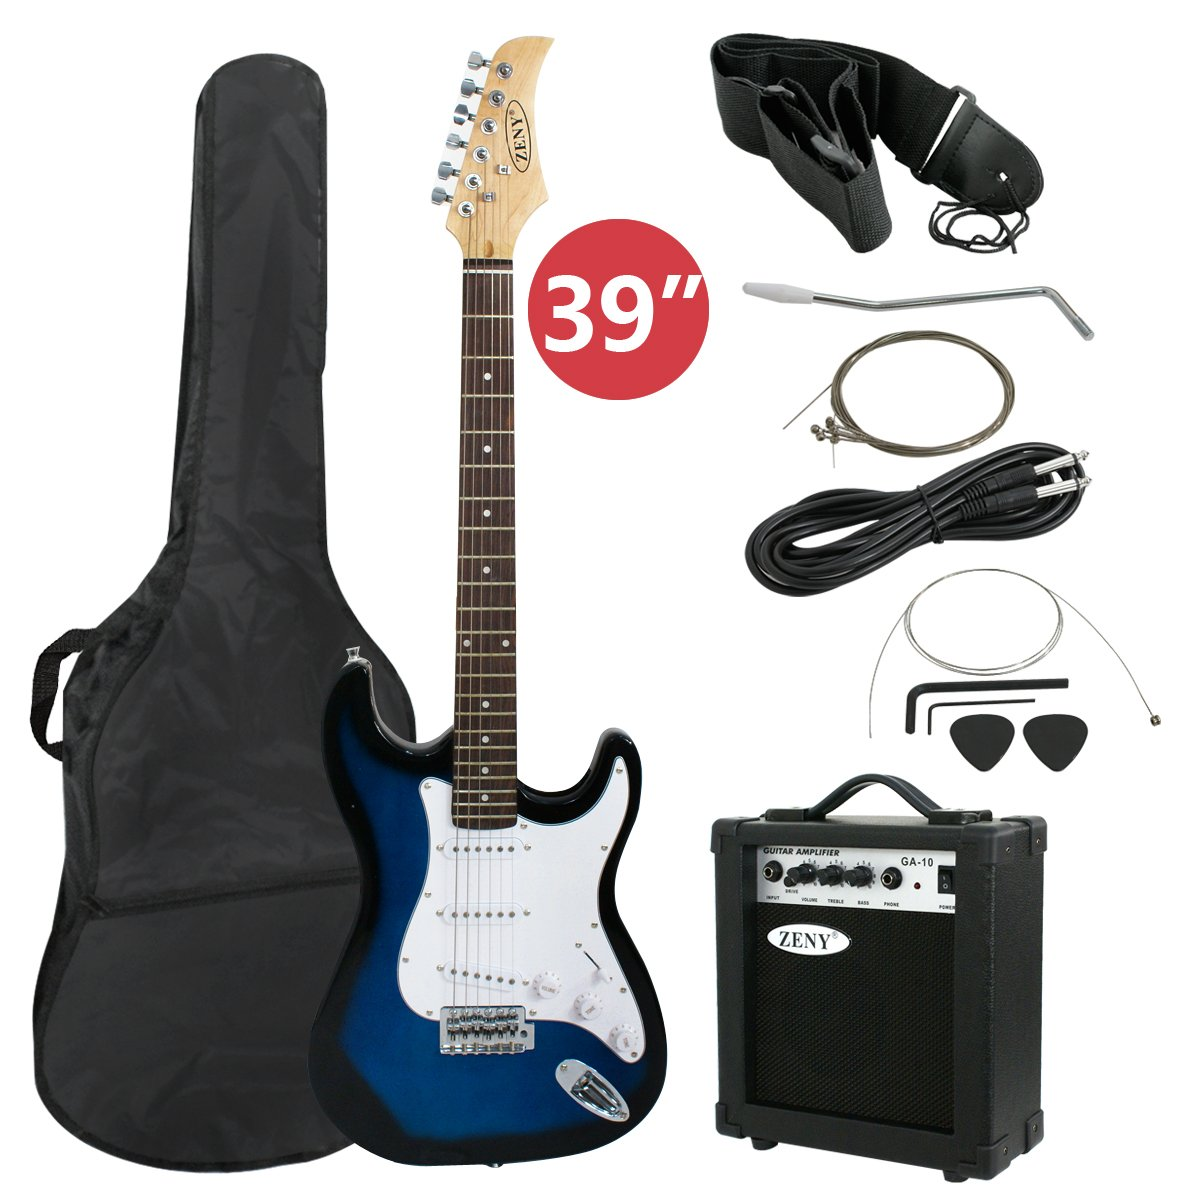 ZENY 39'' Full Size Electric Guitar with Amp, Case and Accessories Pack Beginner Starter Package, Blue Ideal Christmas Thanksgiving Holiday Gift by ZENY